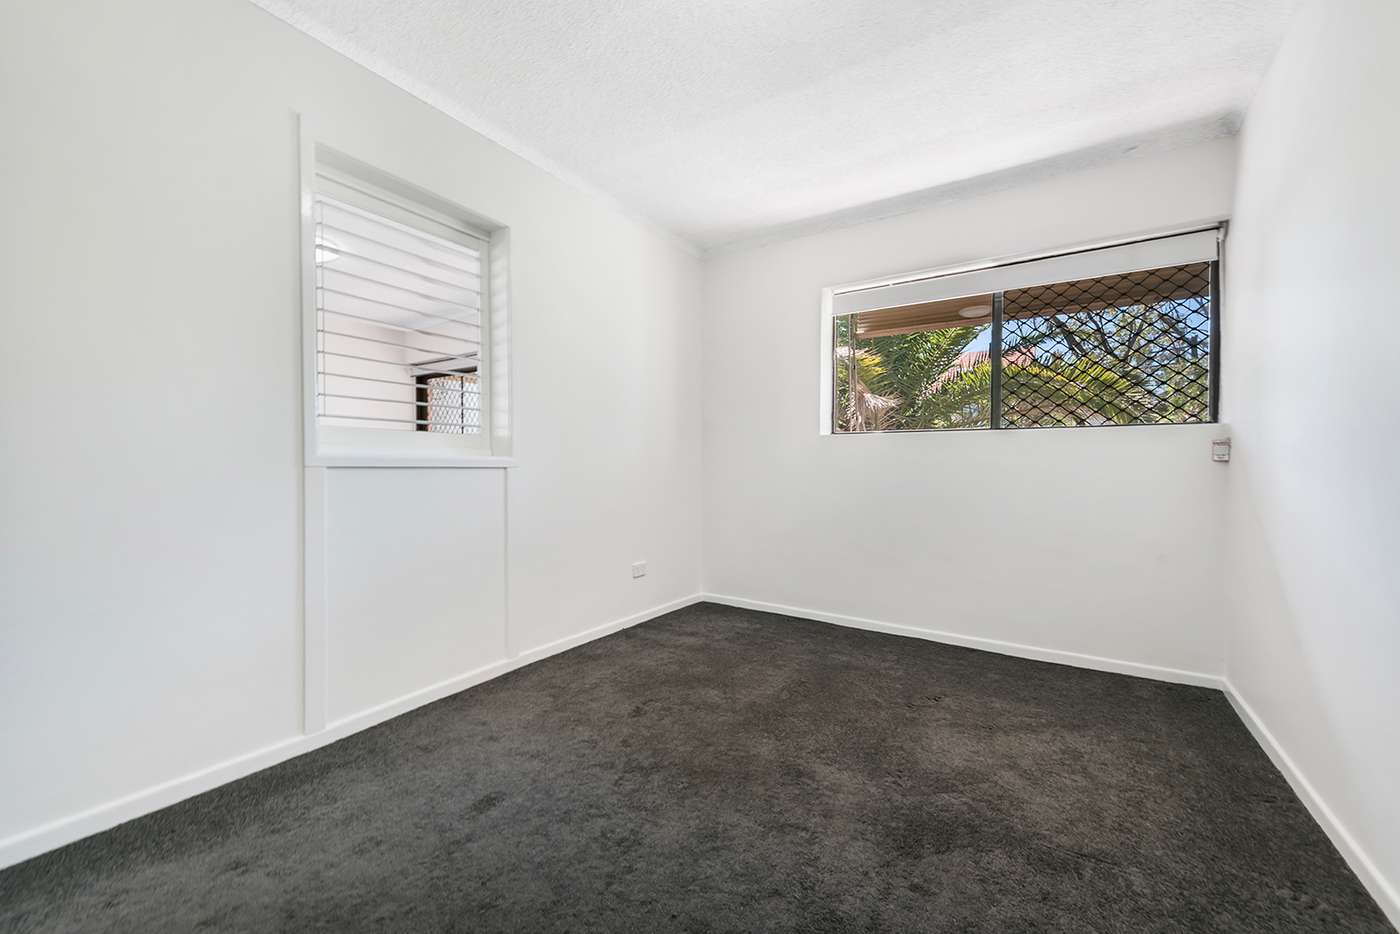 Sixth view of Homely house listing, 2/65 Jellicoe Street, Coorparoo QLD 4151